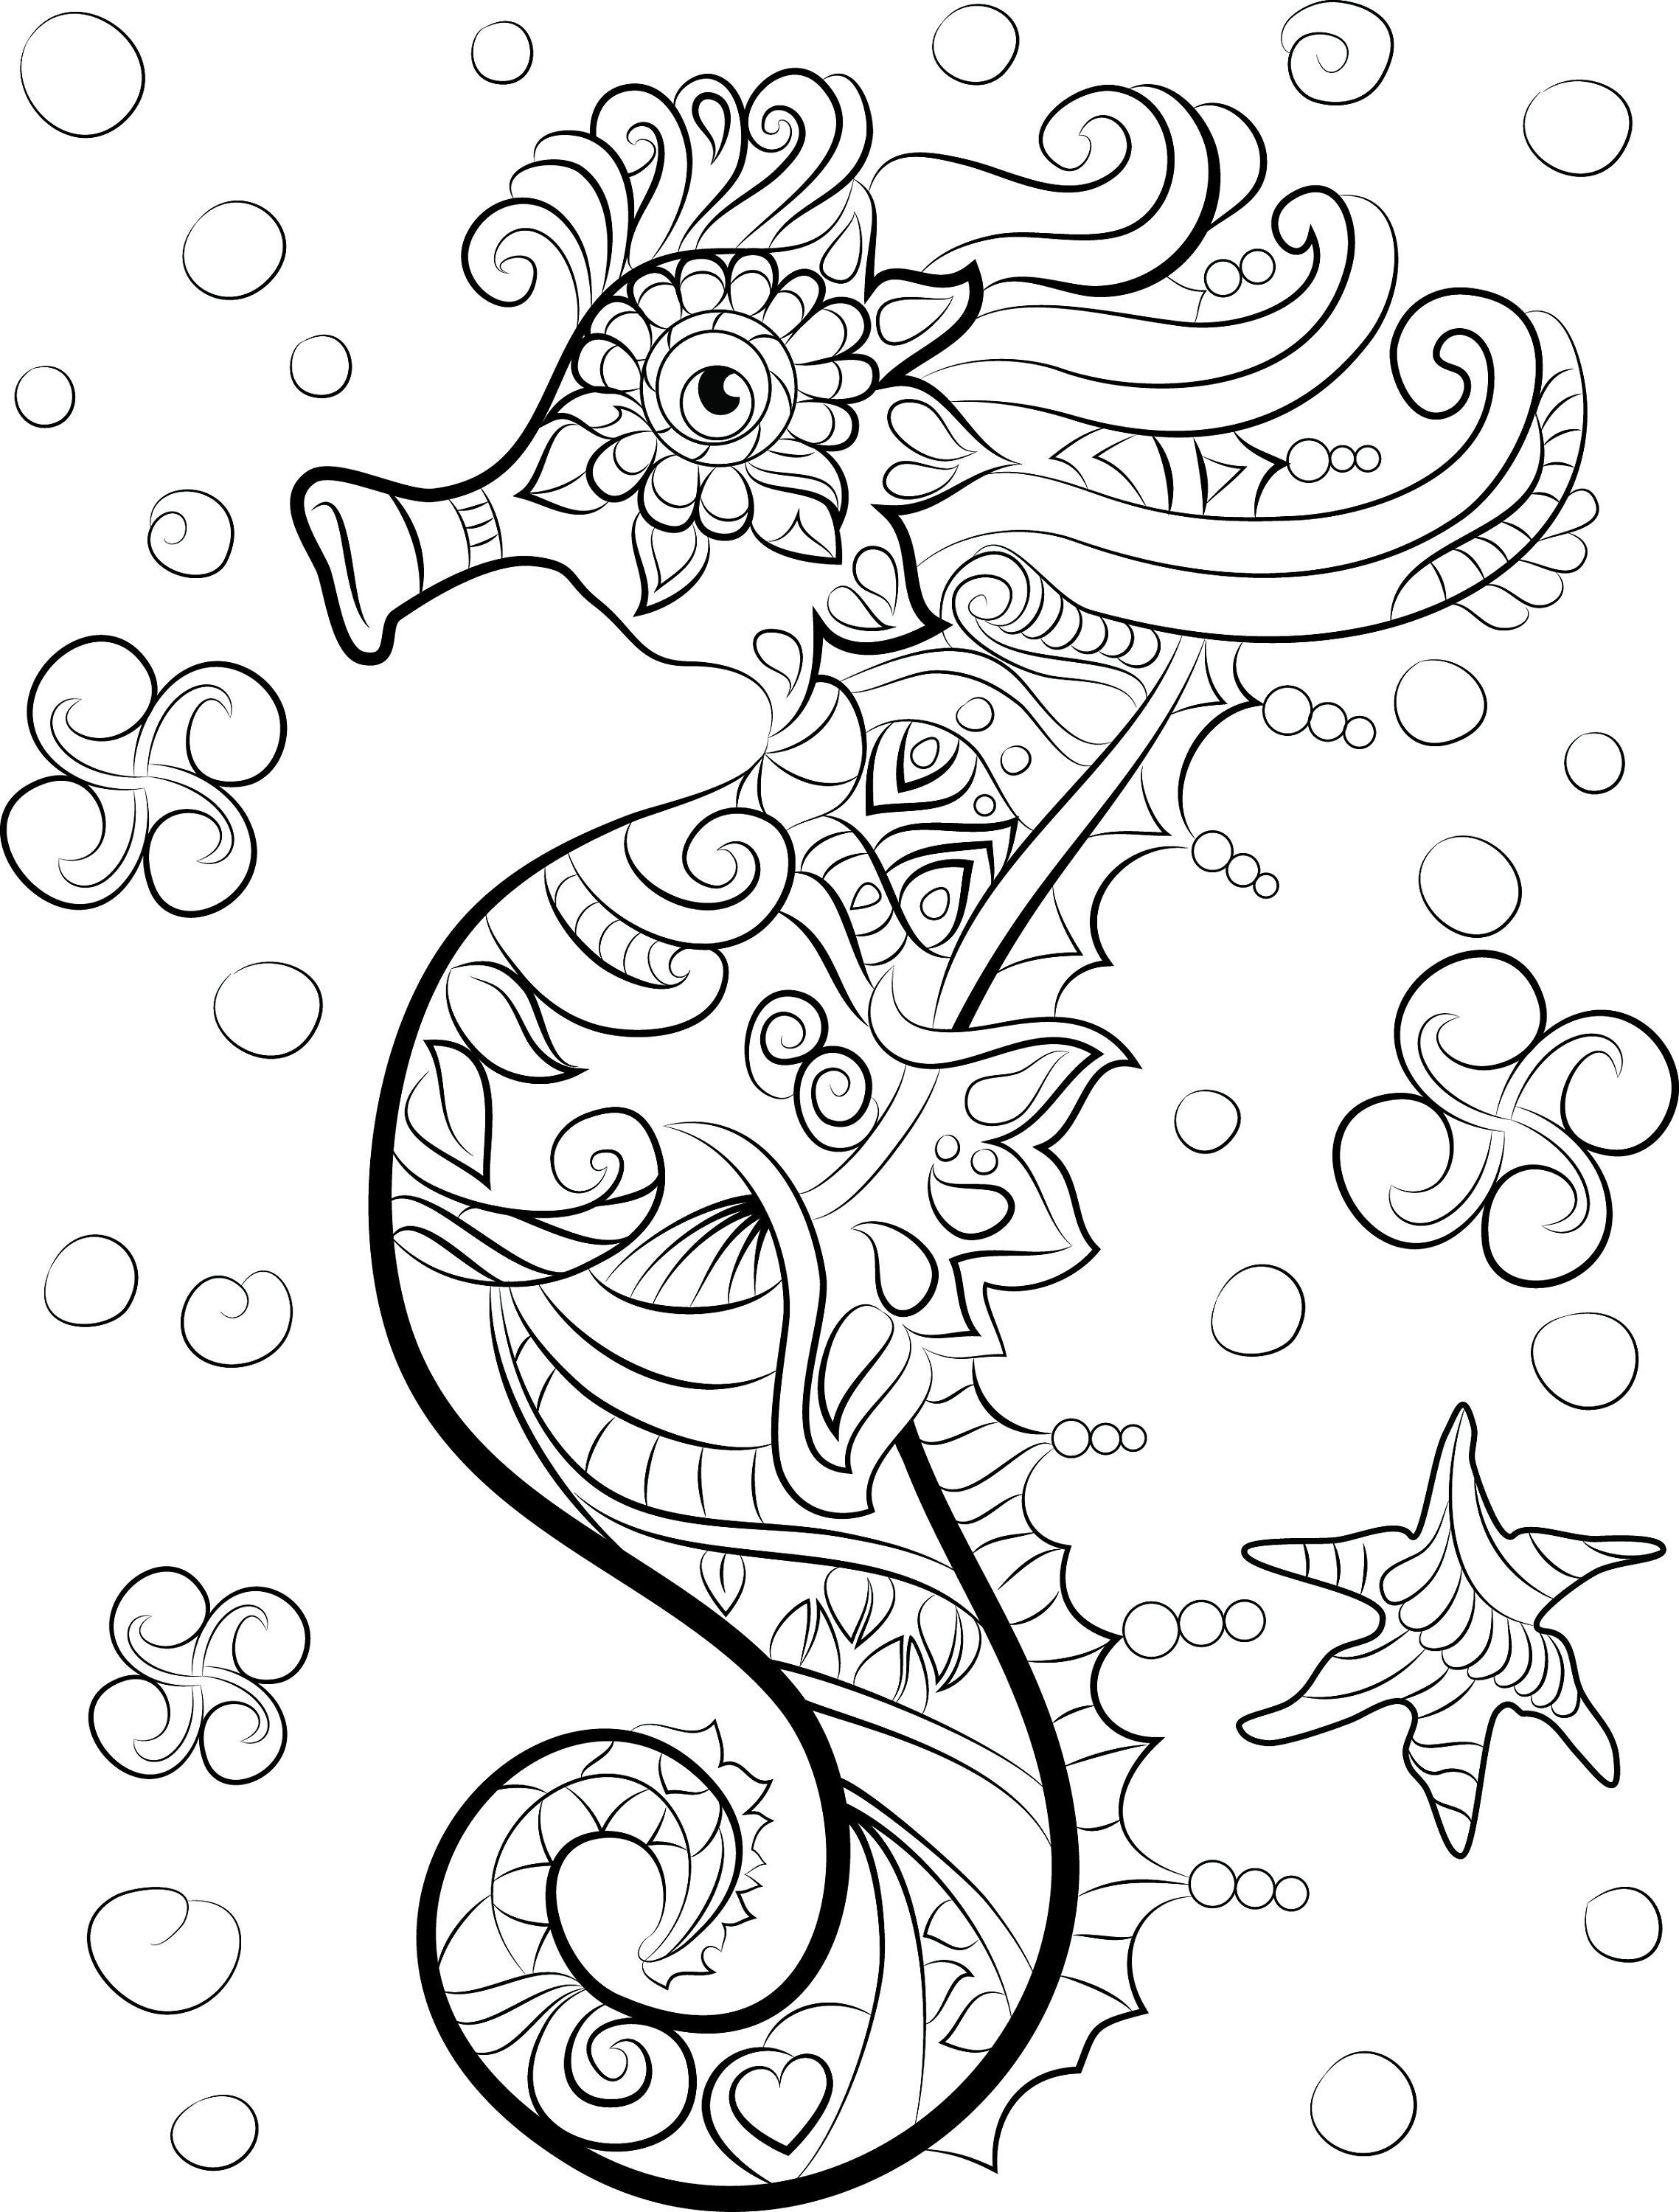 Sea Horse Adult Coloring Page Under the Sea Digital